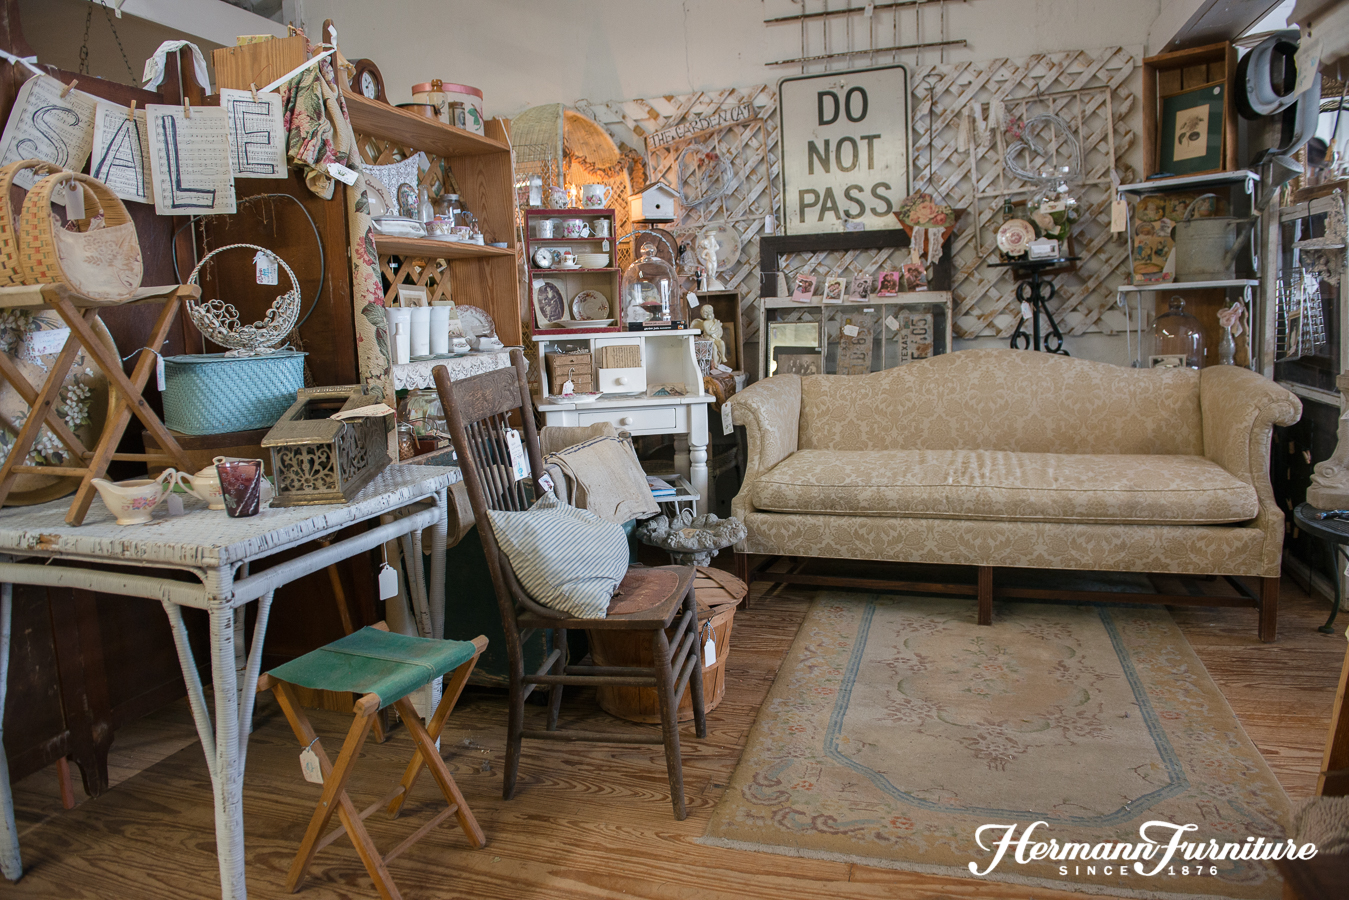 Ordinaire Thirty Dealers Fill 6,000 Square Feet With Treasures Ranging From  Primitives To Fine Furniture. Our Ever Changing Selection Includes  Something For Every ...